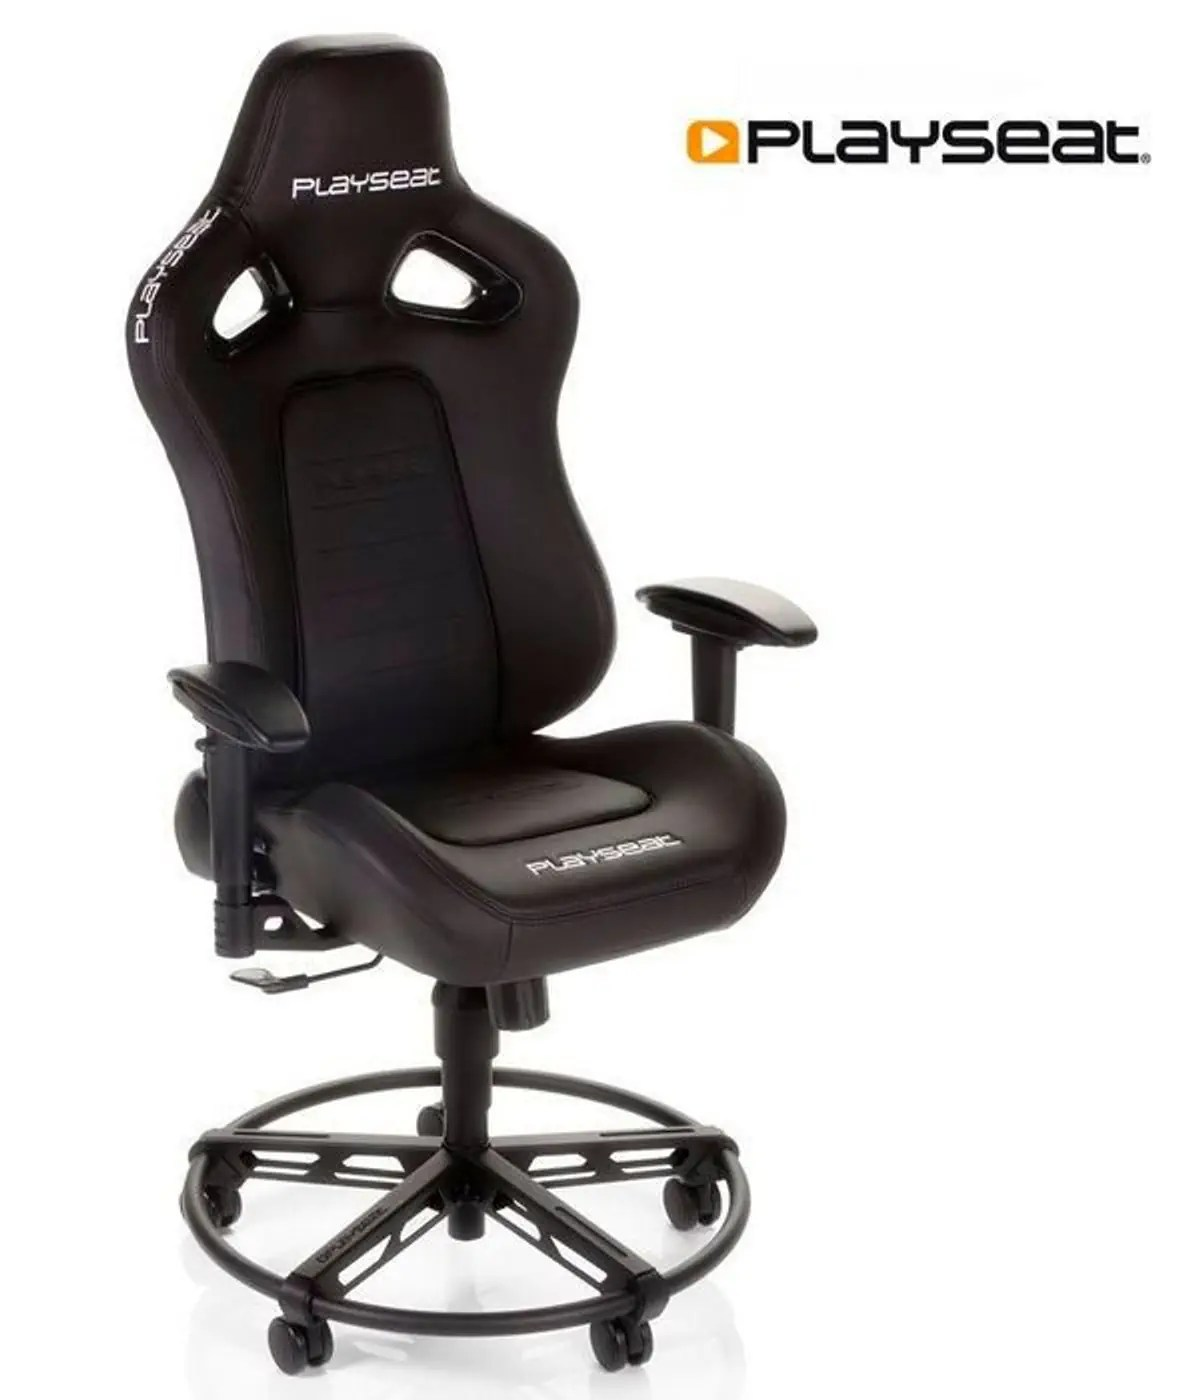 Stuhl Gamer Playseat Gaming Stuhl L33t Schwarz Gaming Stuhl